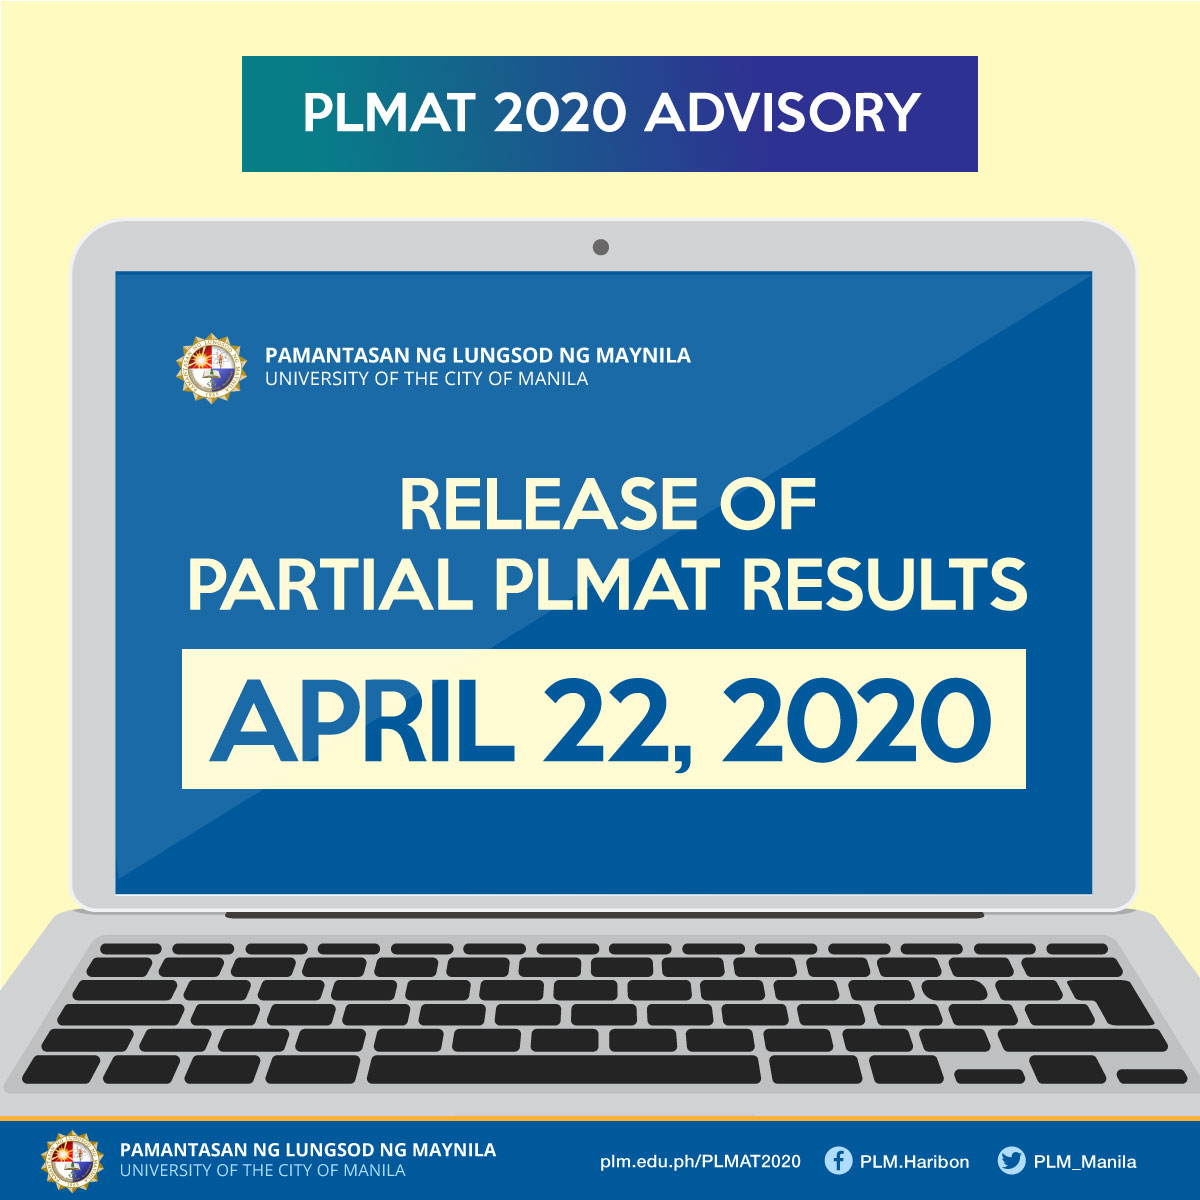 Release of PLMAT 2020 Results Moved to April 22, 2020